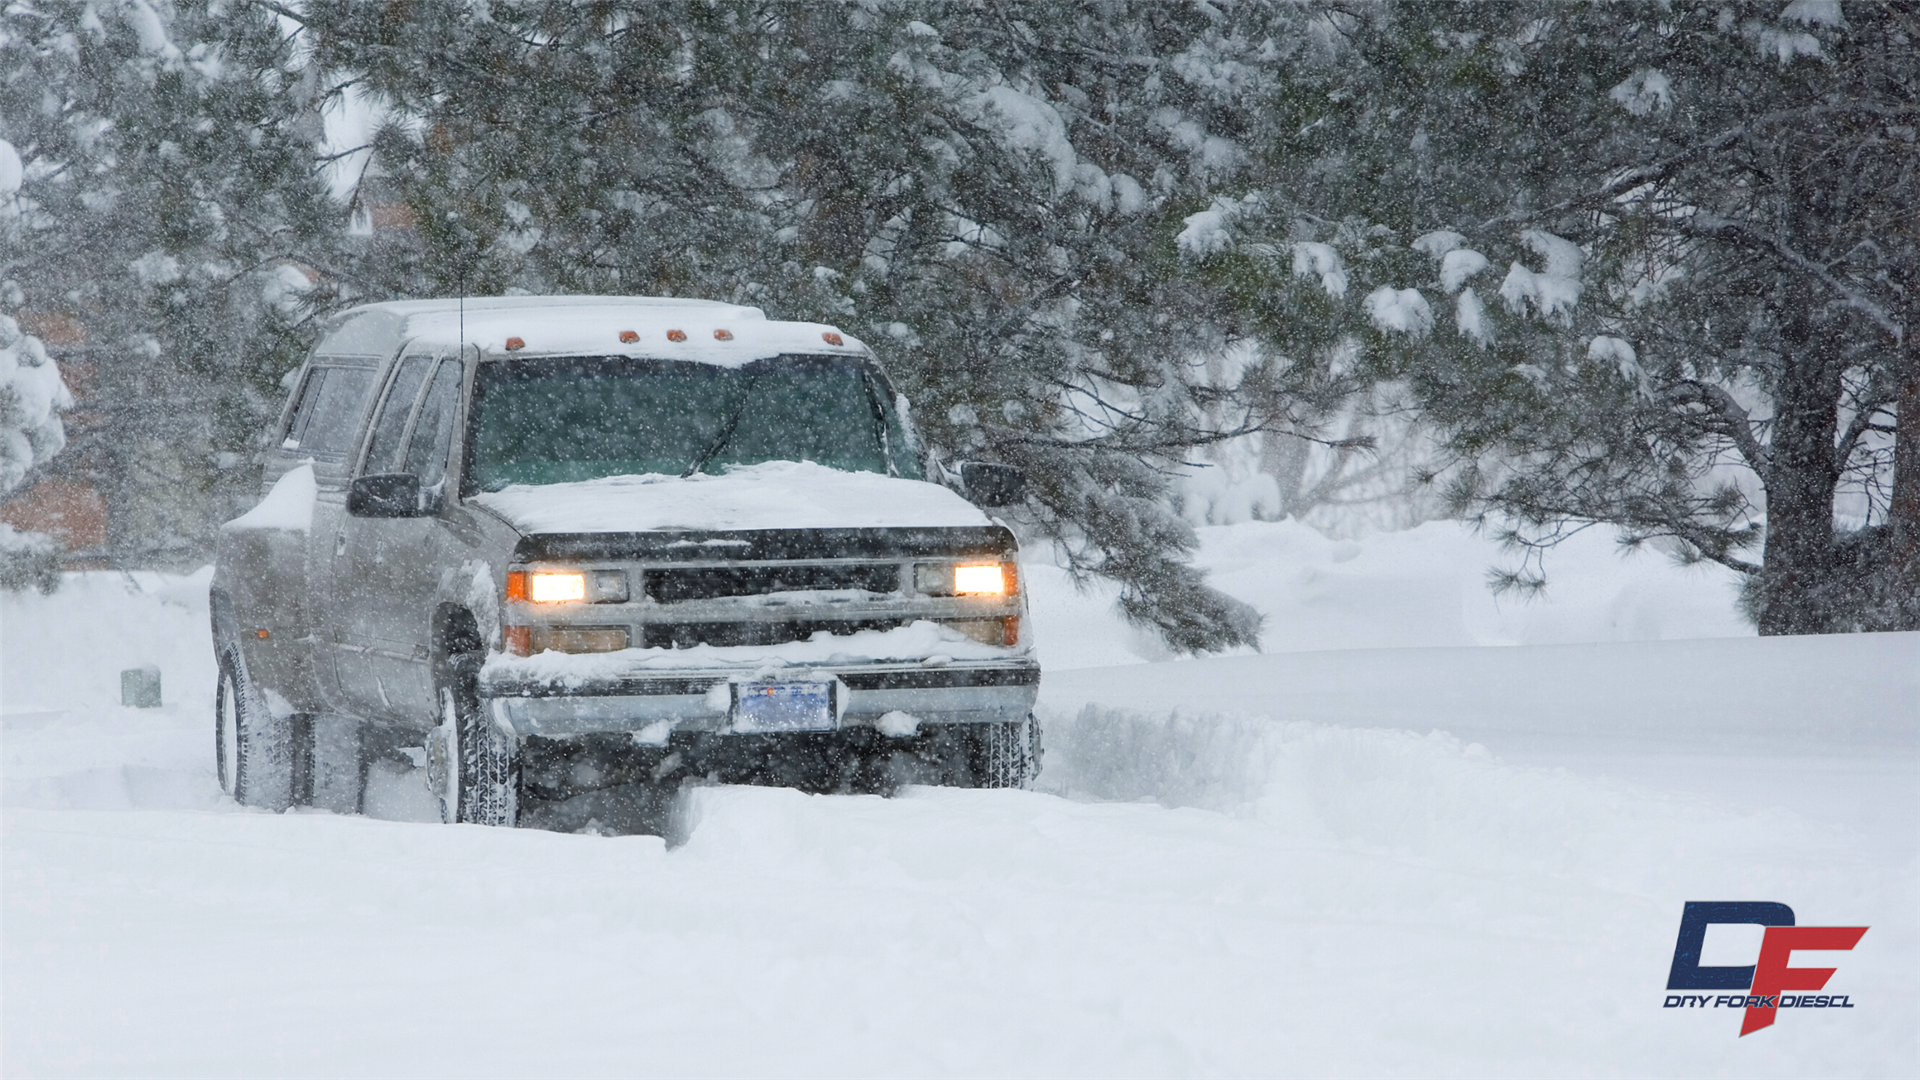 Dry Fork Diesel Repair Winter Driving Tips